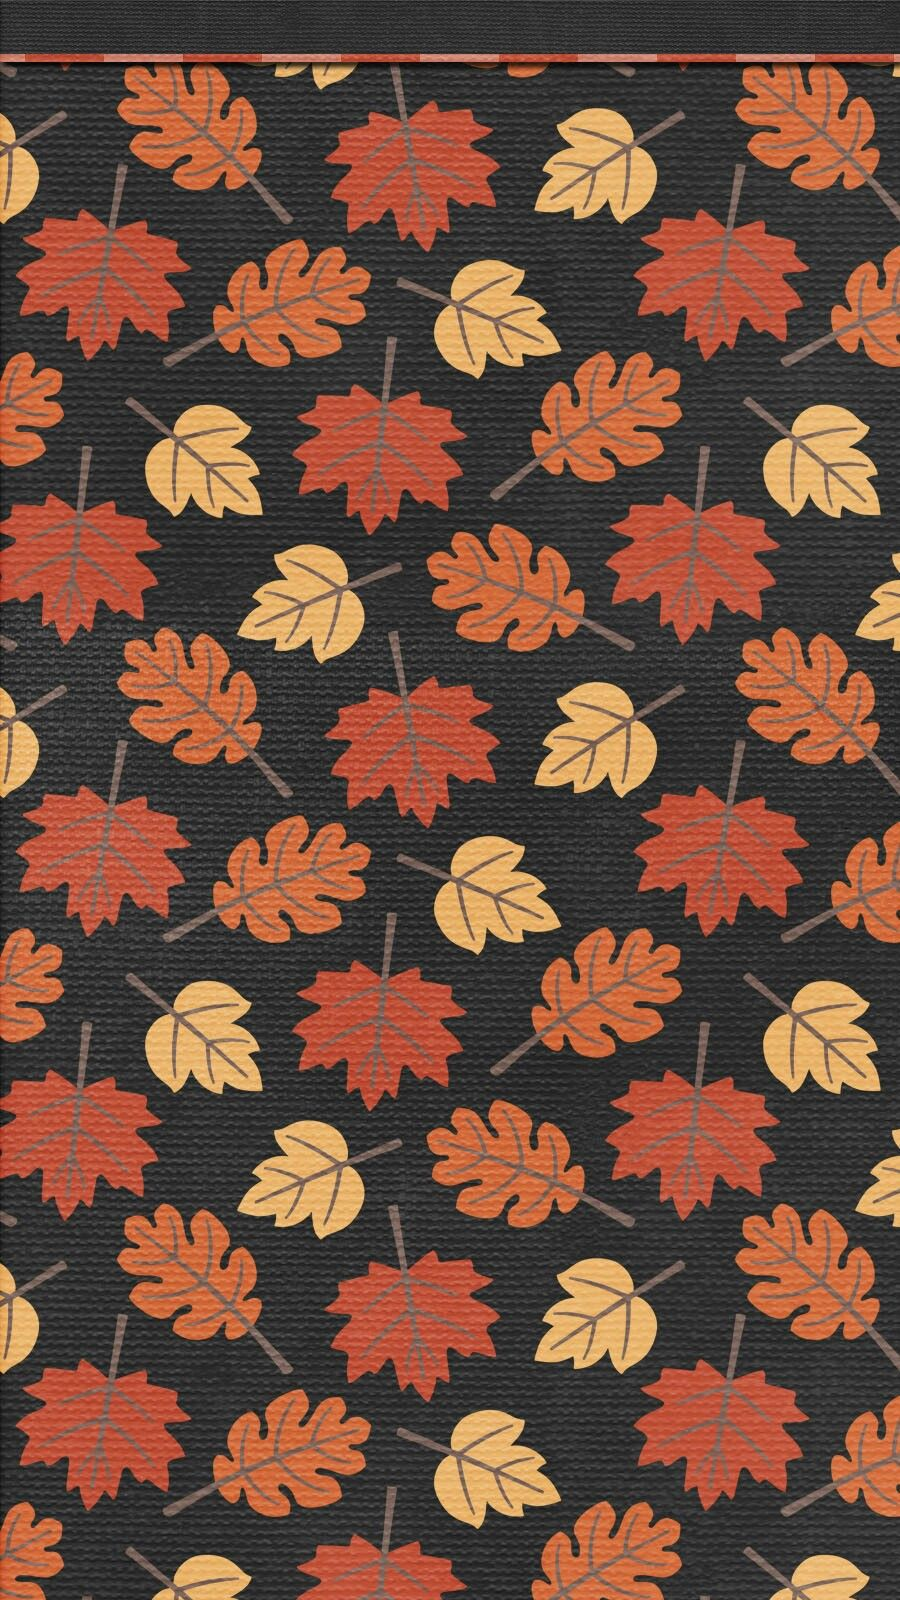 Autumn Wallpaper Iphone Android Theme Cute Fall Wallpaper Iphone Wallpaper Fall Thanksgiving Wallpaper